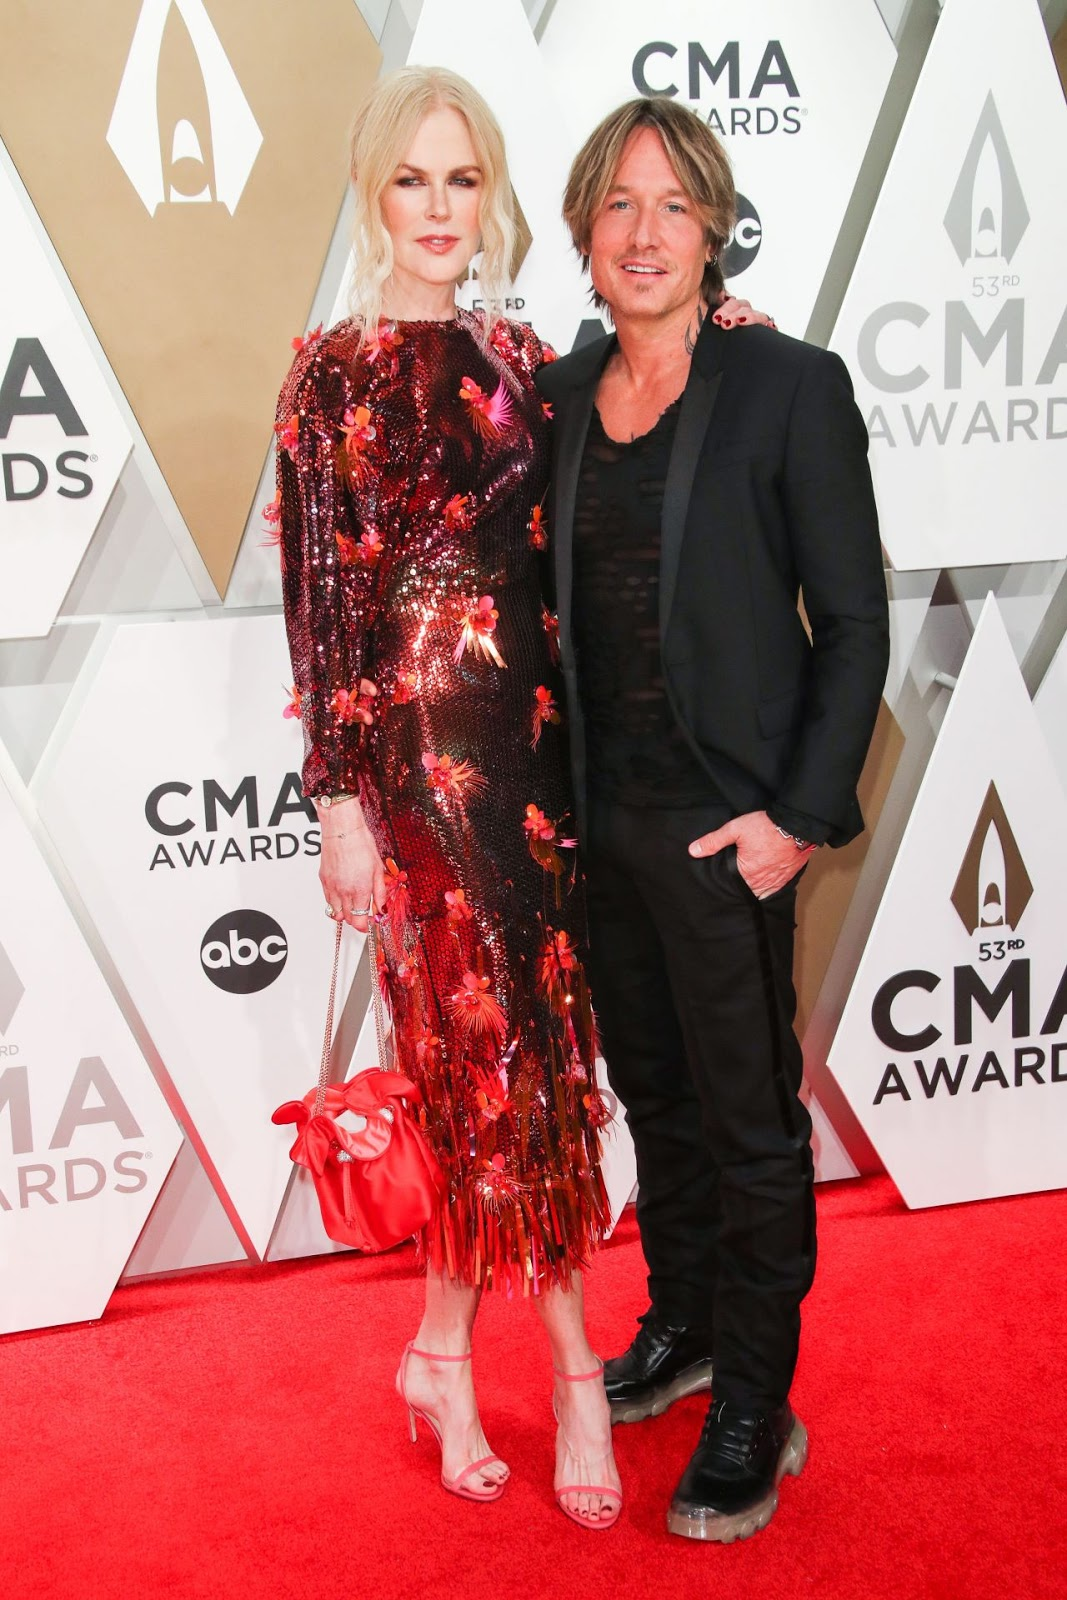 Nicole Kidman dazzles in red sequins as she walks the red carpet with husband Keith Urban at CMA Awards in Nashville